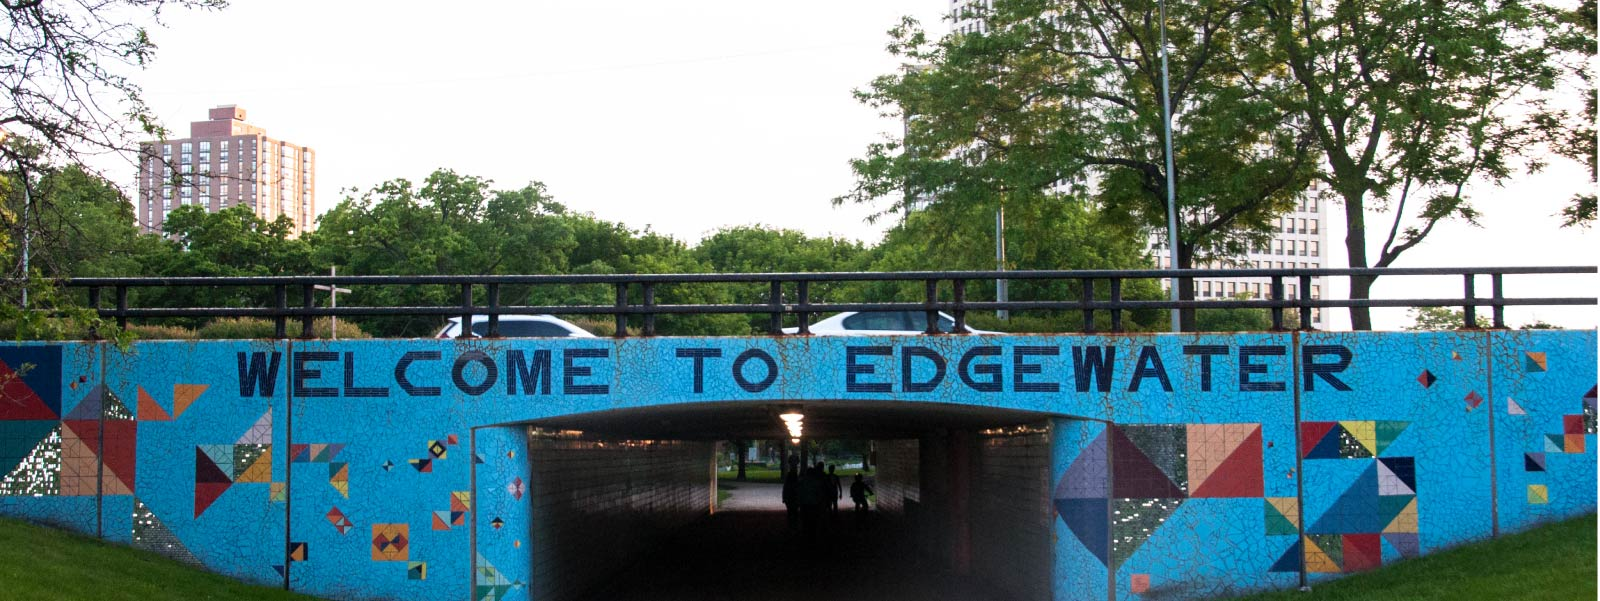 "A ""Welcome to Edgewater"" mural painted on the side of a pedestrian Lake Shore Drive underpass."